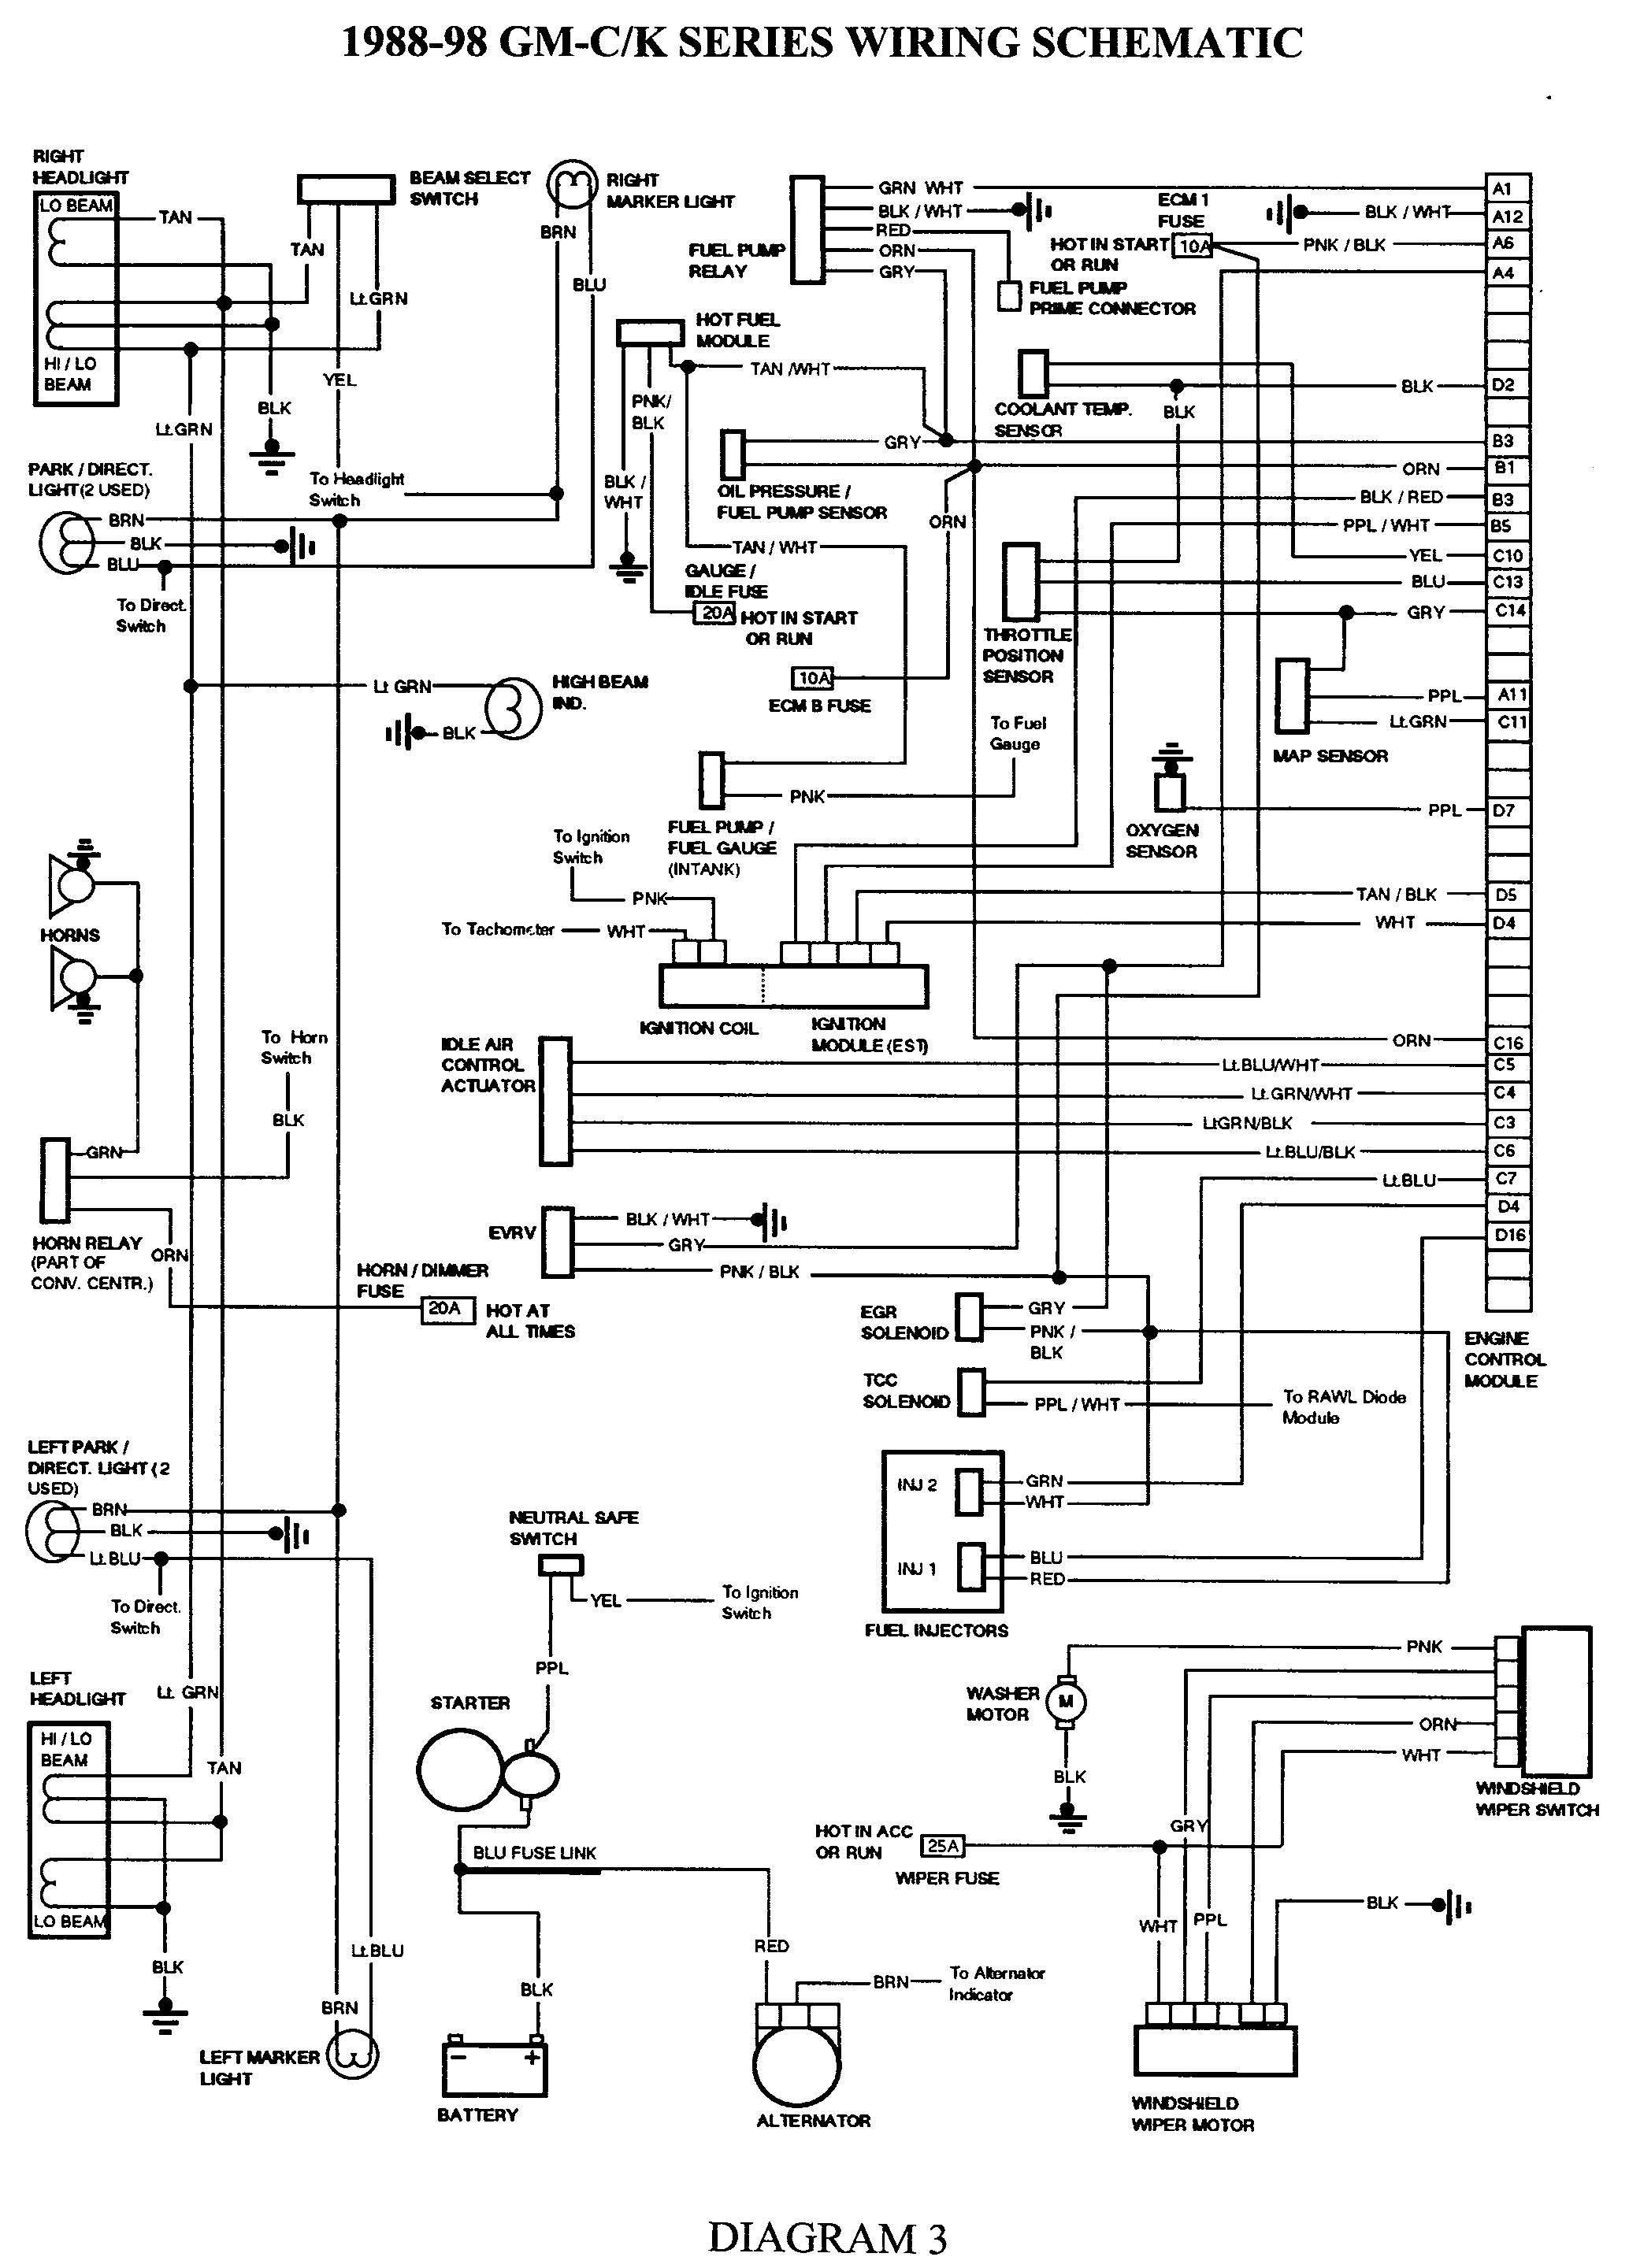 1991 Caprice Wiring Diagram - Wiring Diagrams Click - 1991 Chevy Truck Wiring Diagram